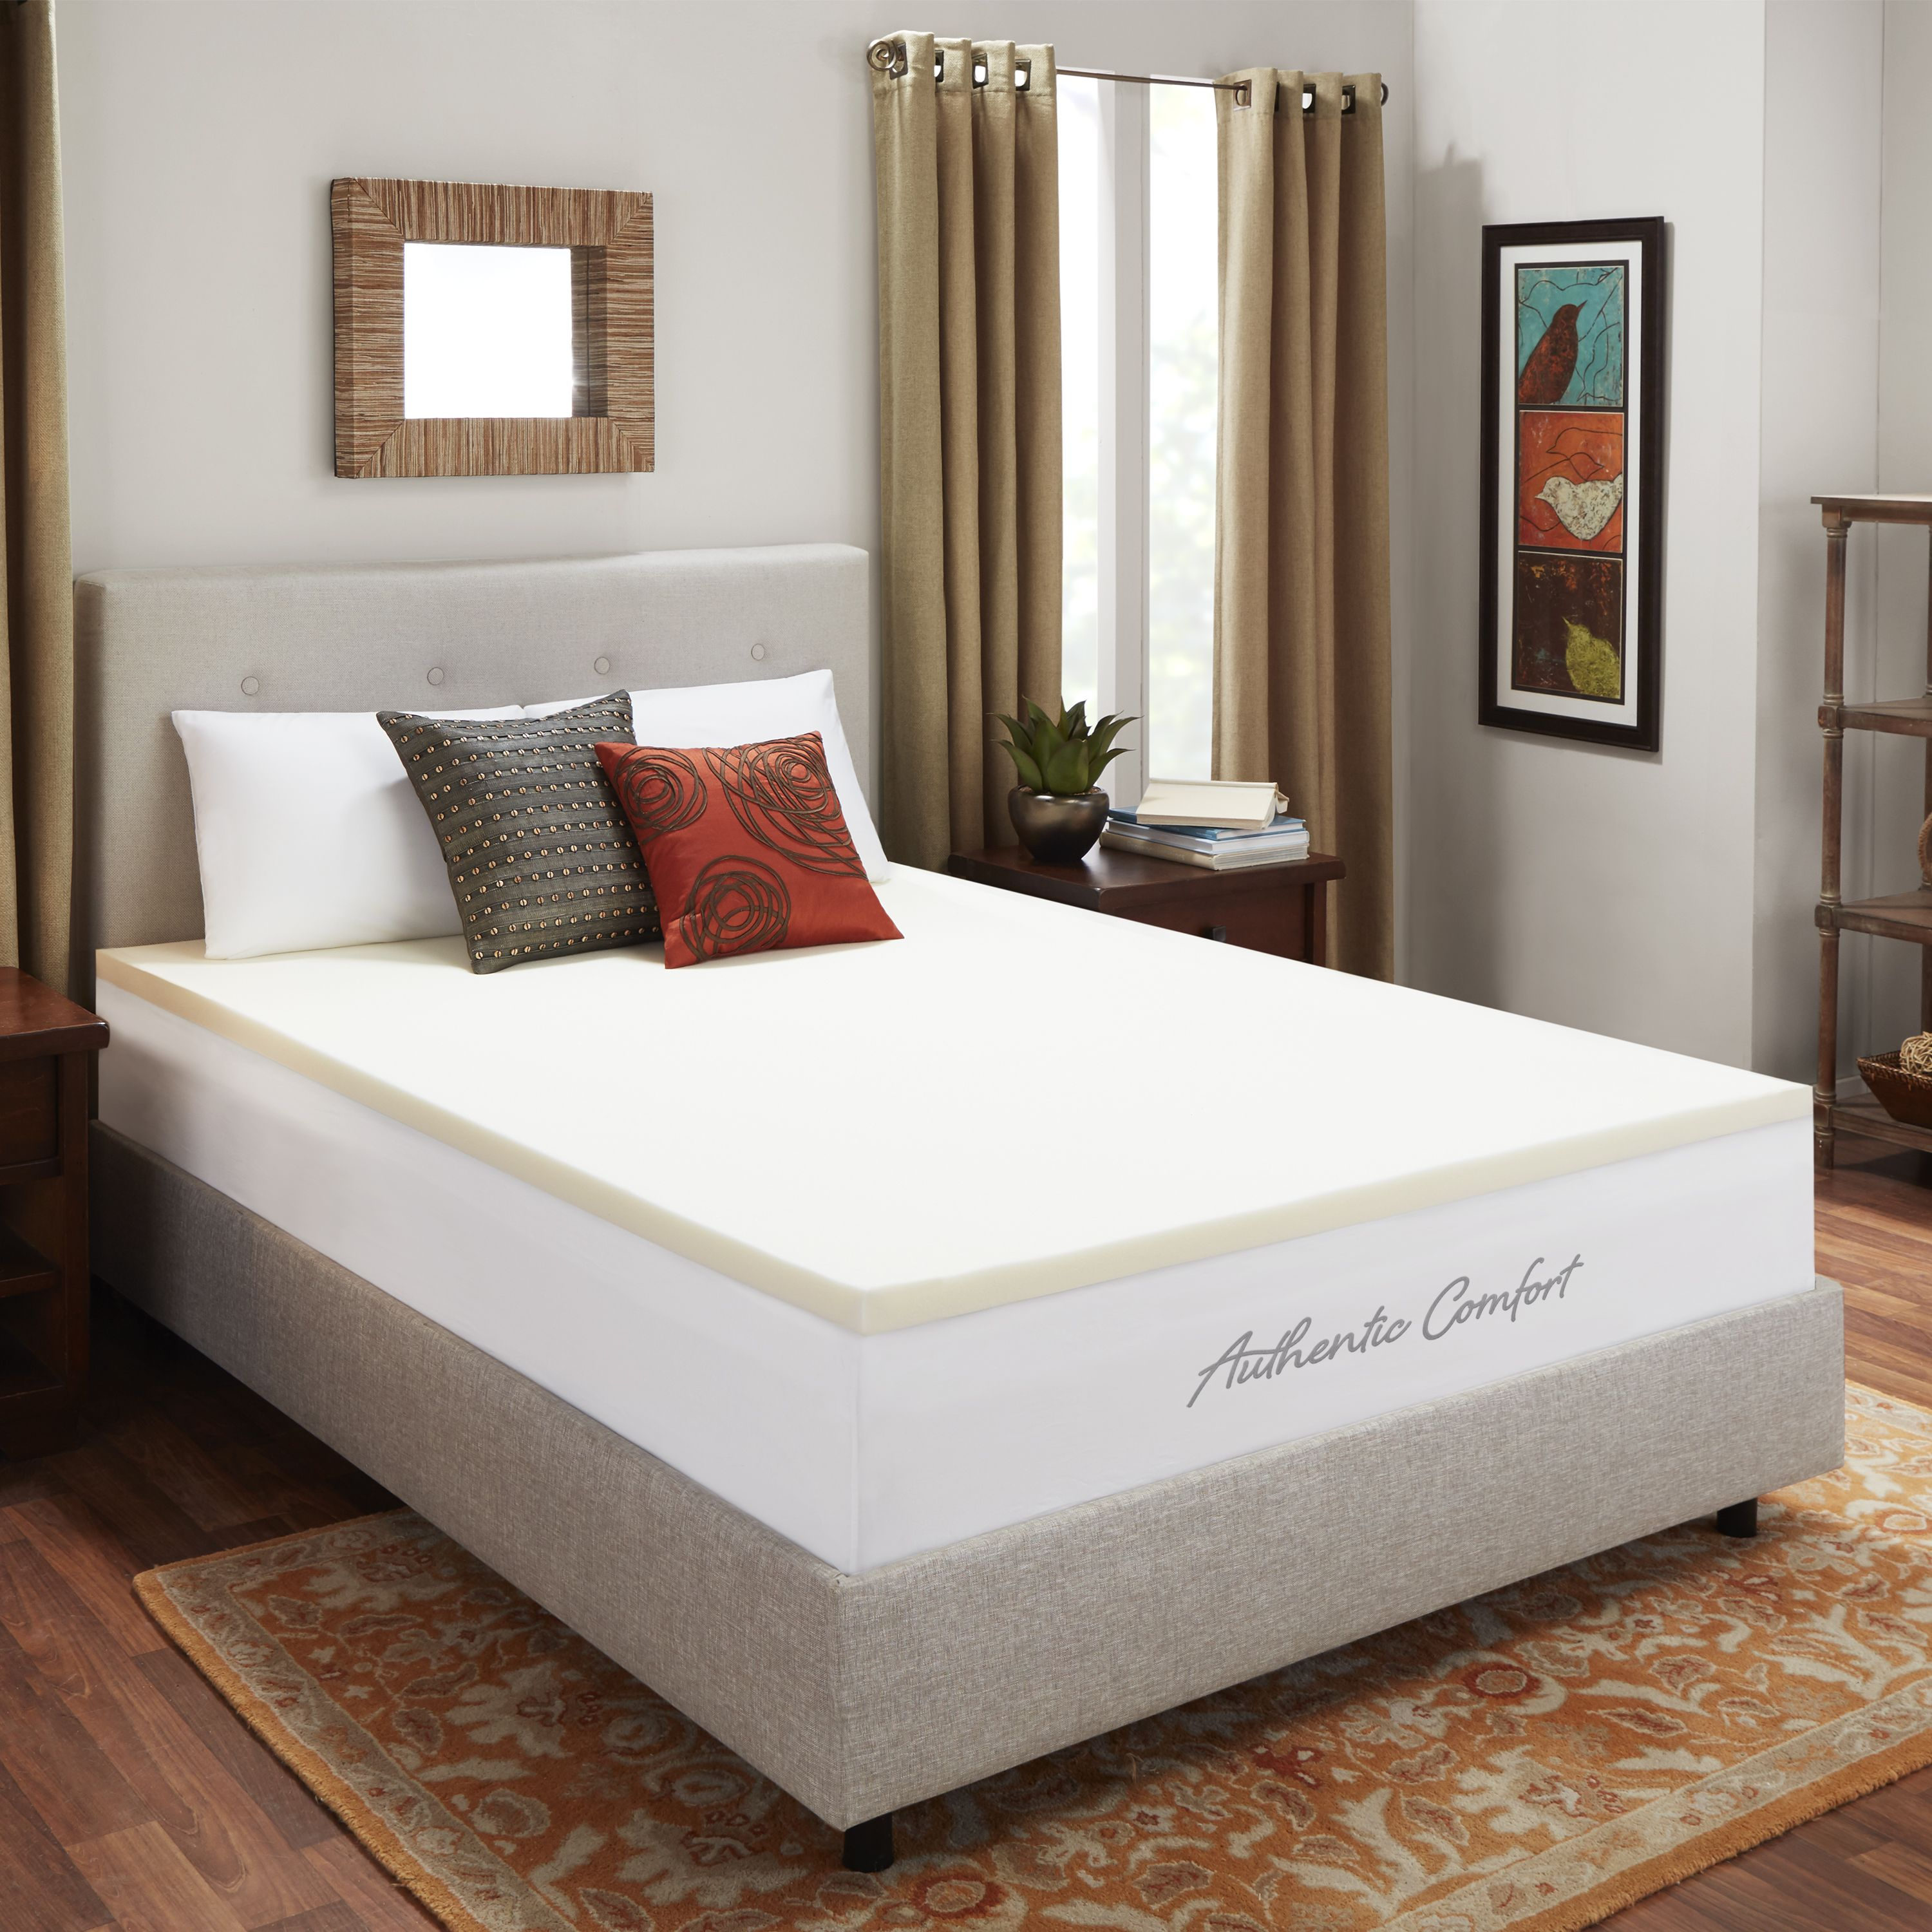 2-Inch Breathable Memory Foam Mattress Topper